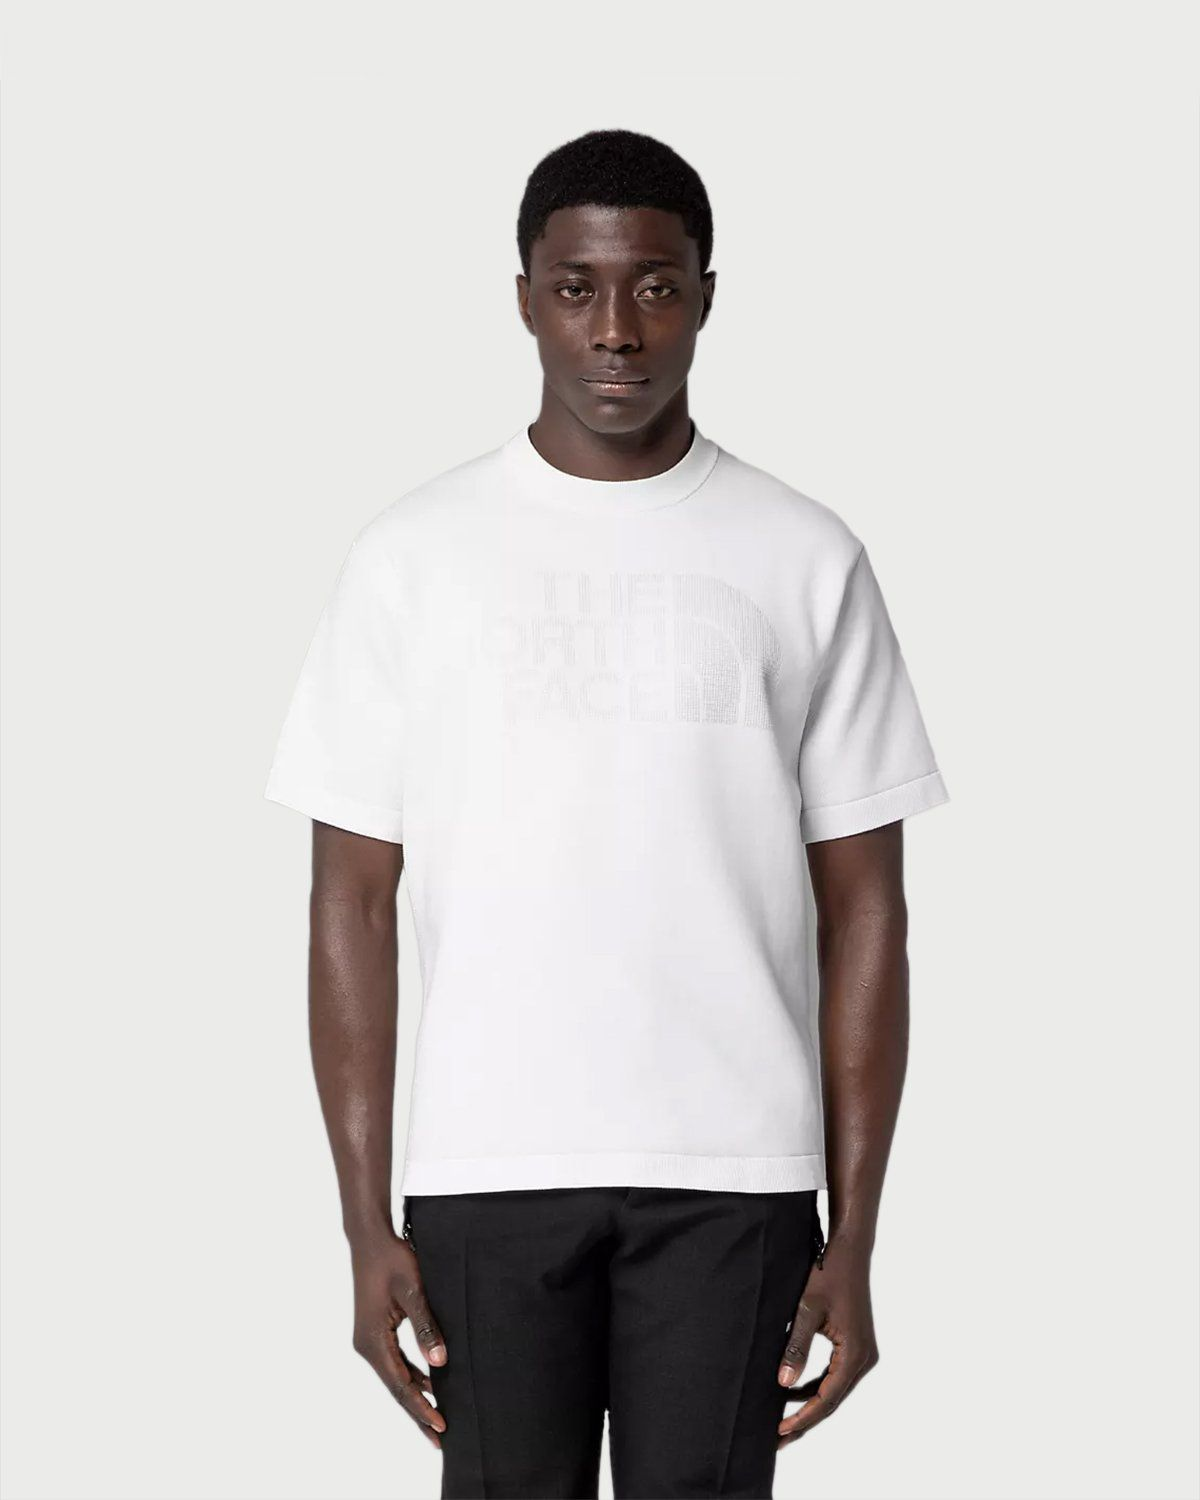 The North Face Black Series - Engineered Knit T-Shirt White - Image 2